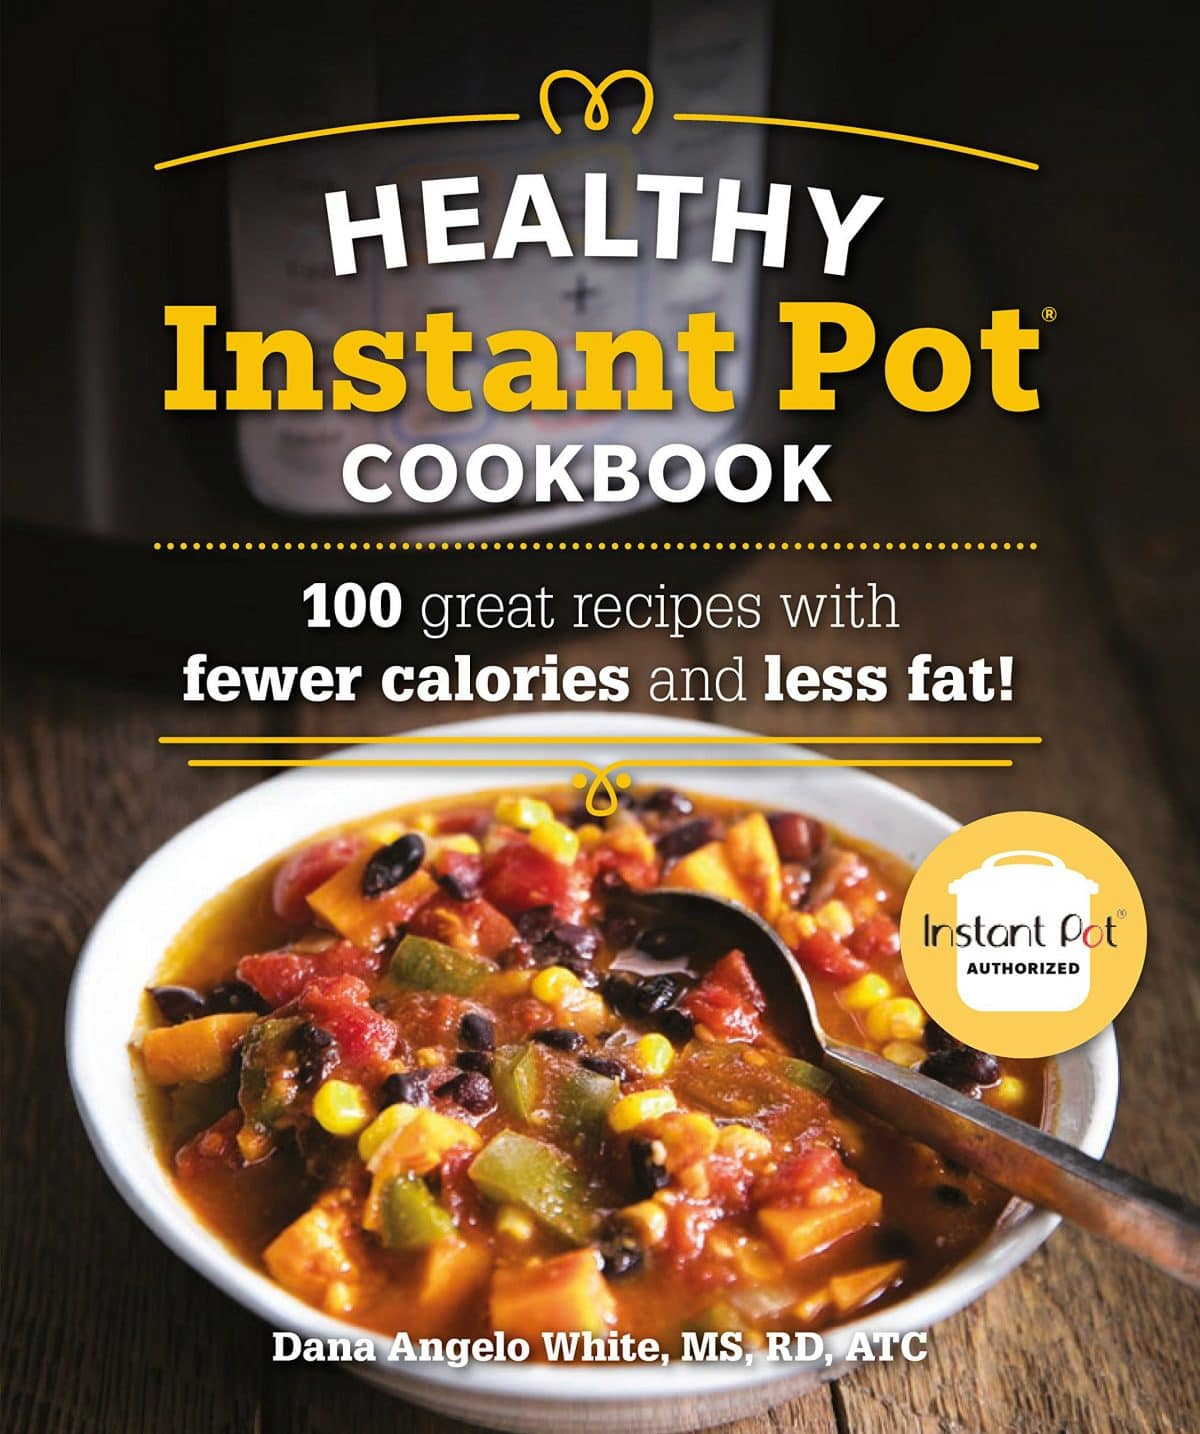 Healthy Instant Pot Cookbook. DK Canada. Image from Amazon.